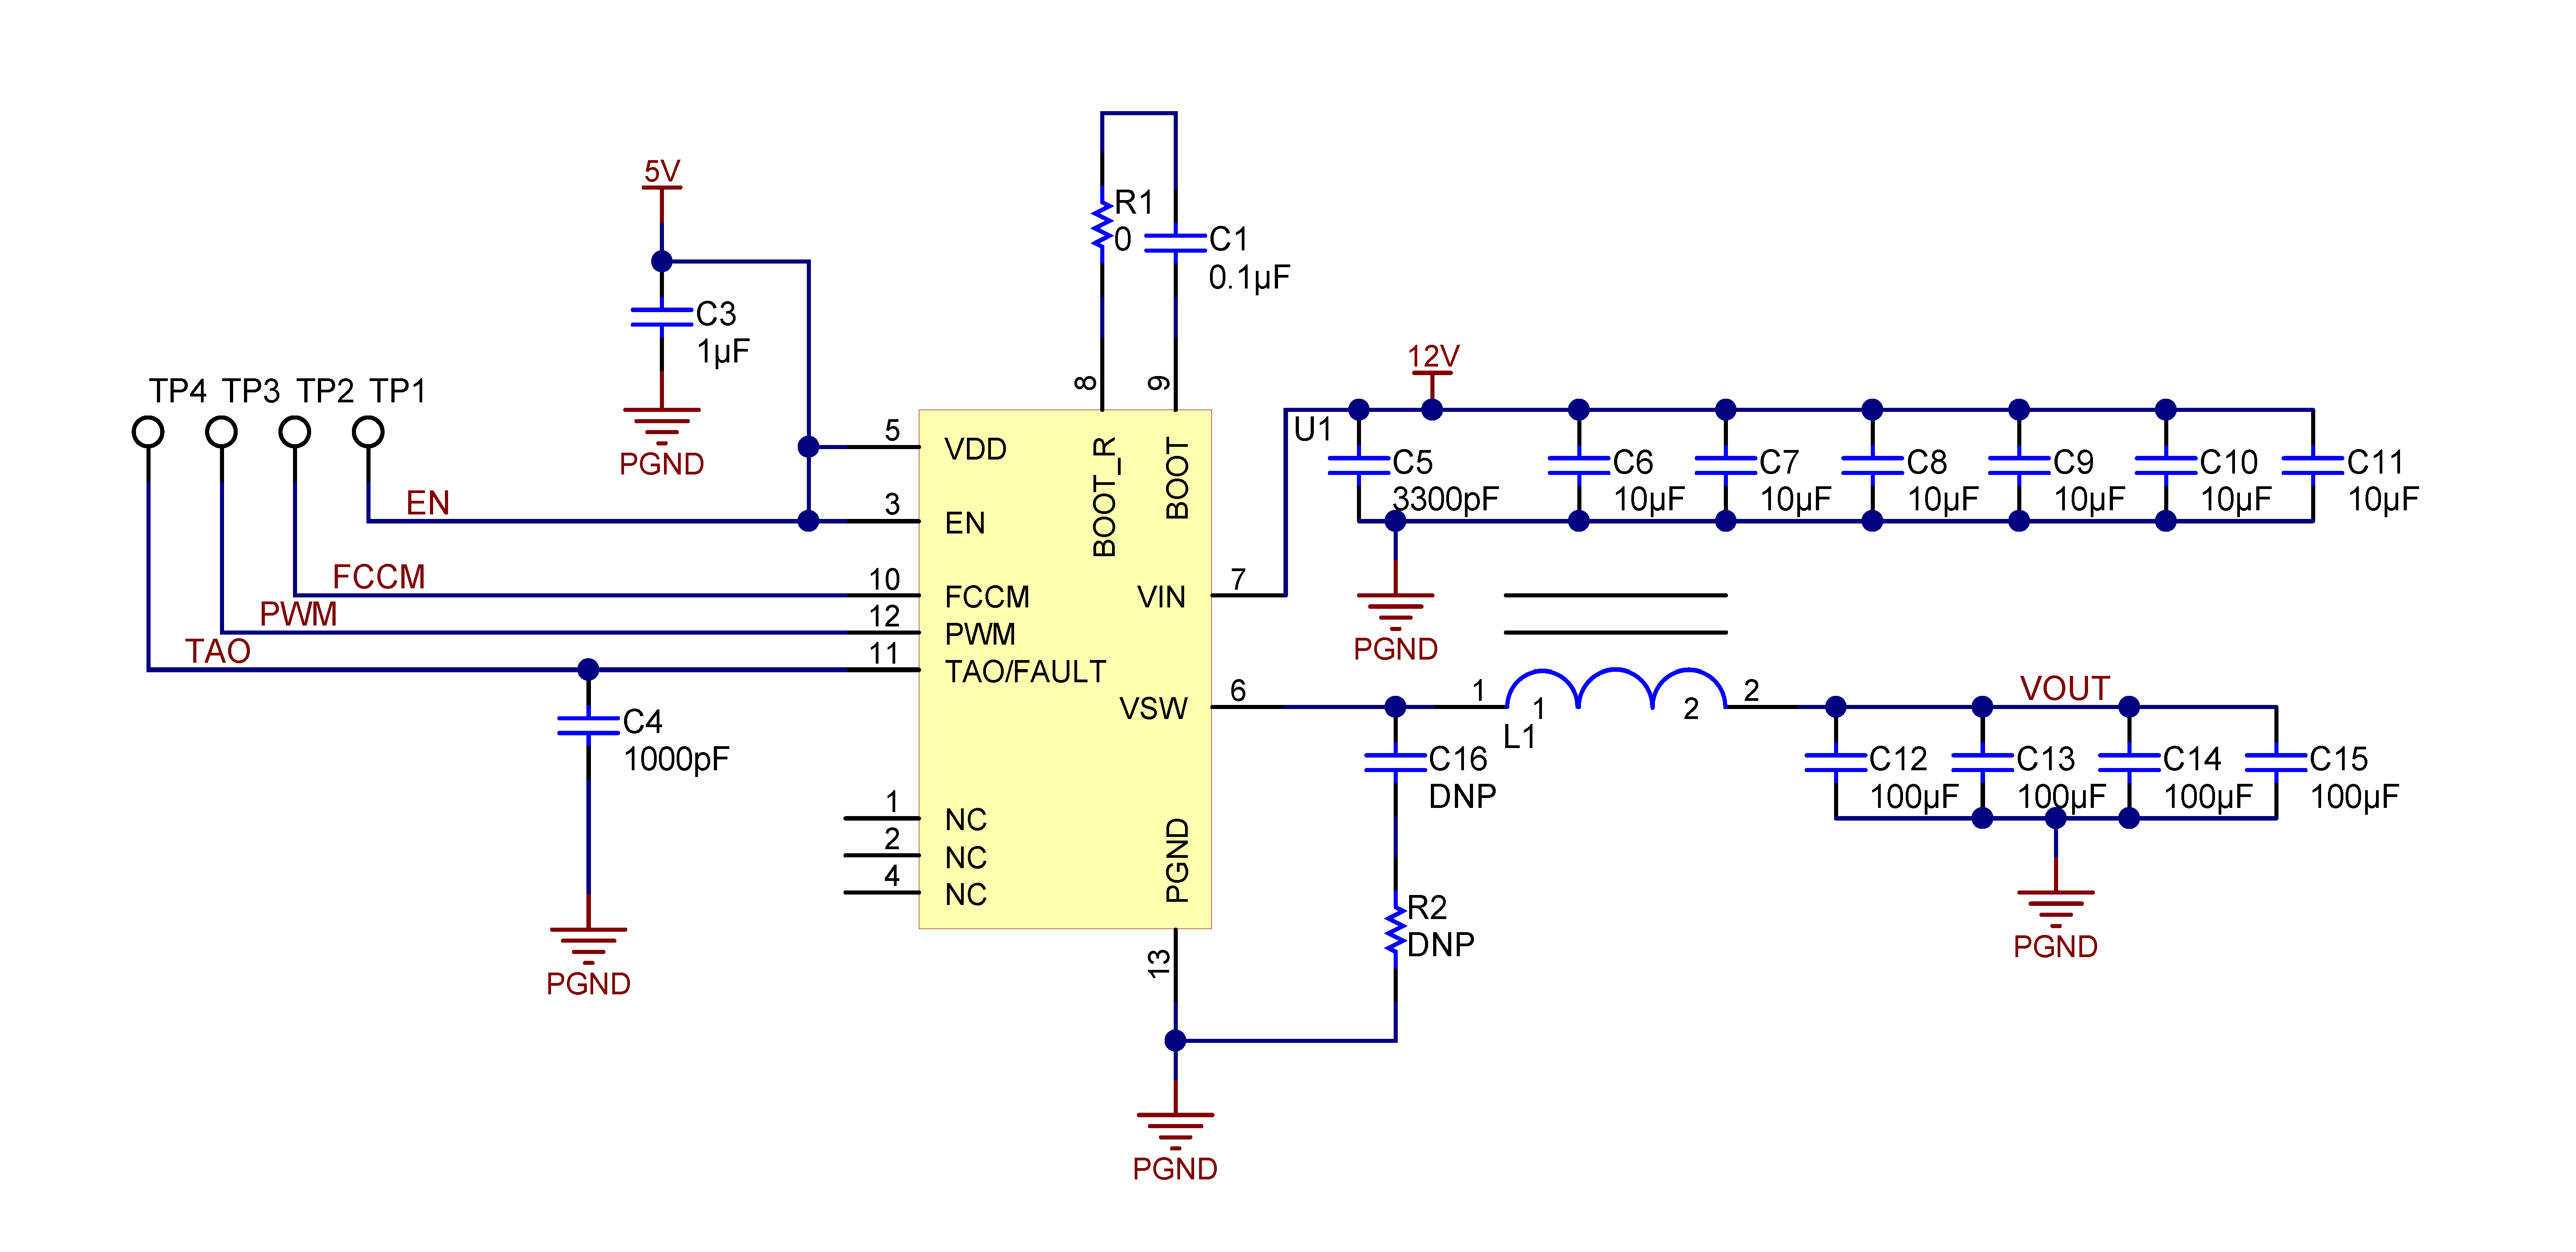 Csd95372aq5m Circuit Diagram And Pcb Layout 912 Recommended Design Overview